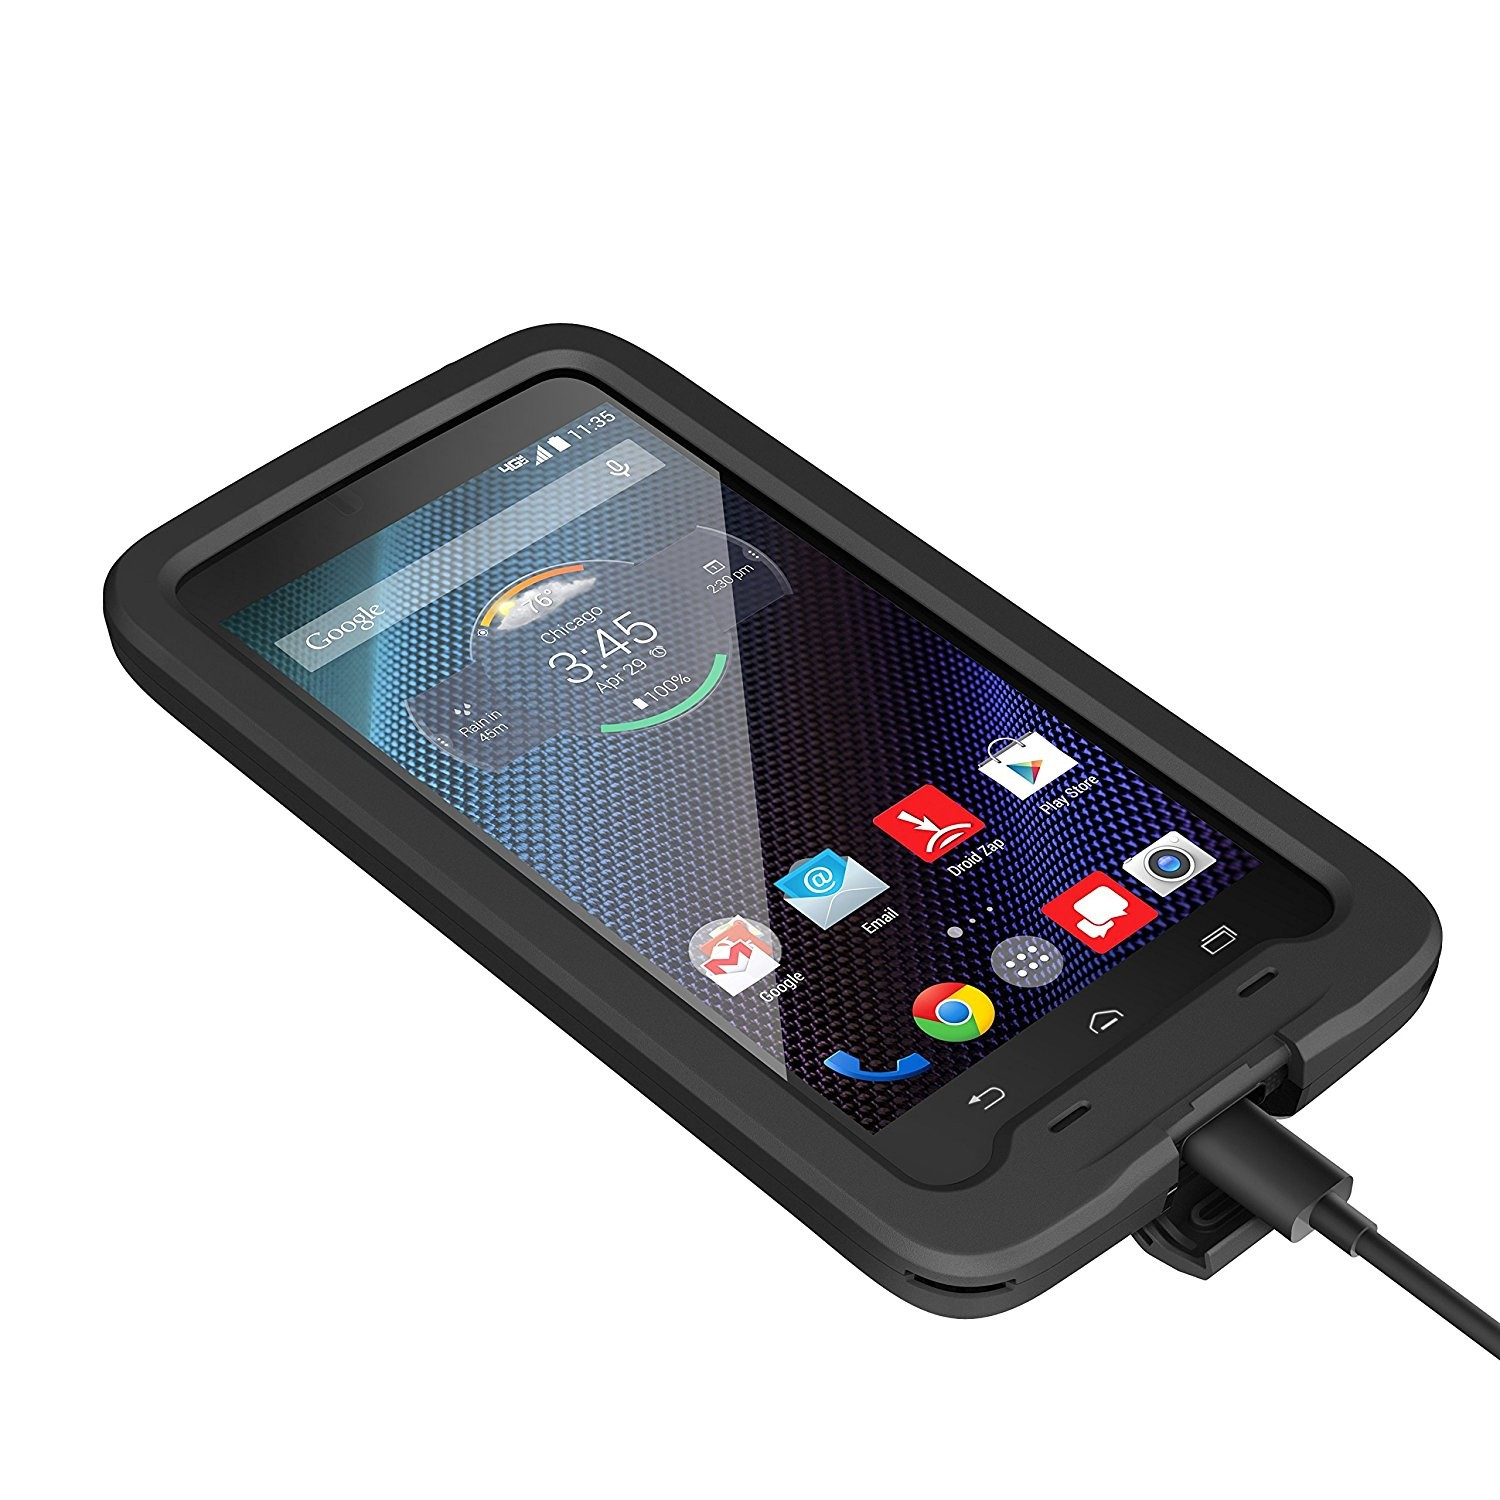 LifeProof Fre Waterproof Case for Motorola Droid Turbo - See more at: https://www.unlimitedcellular.com/LifeProof-Fre-Waterproof-Case-for-Motorola-Droid-Turbo-1st-Gen--Black_p_392040.html#sthash.35fm54tQ.dpuf